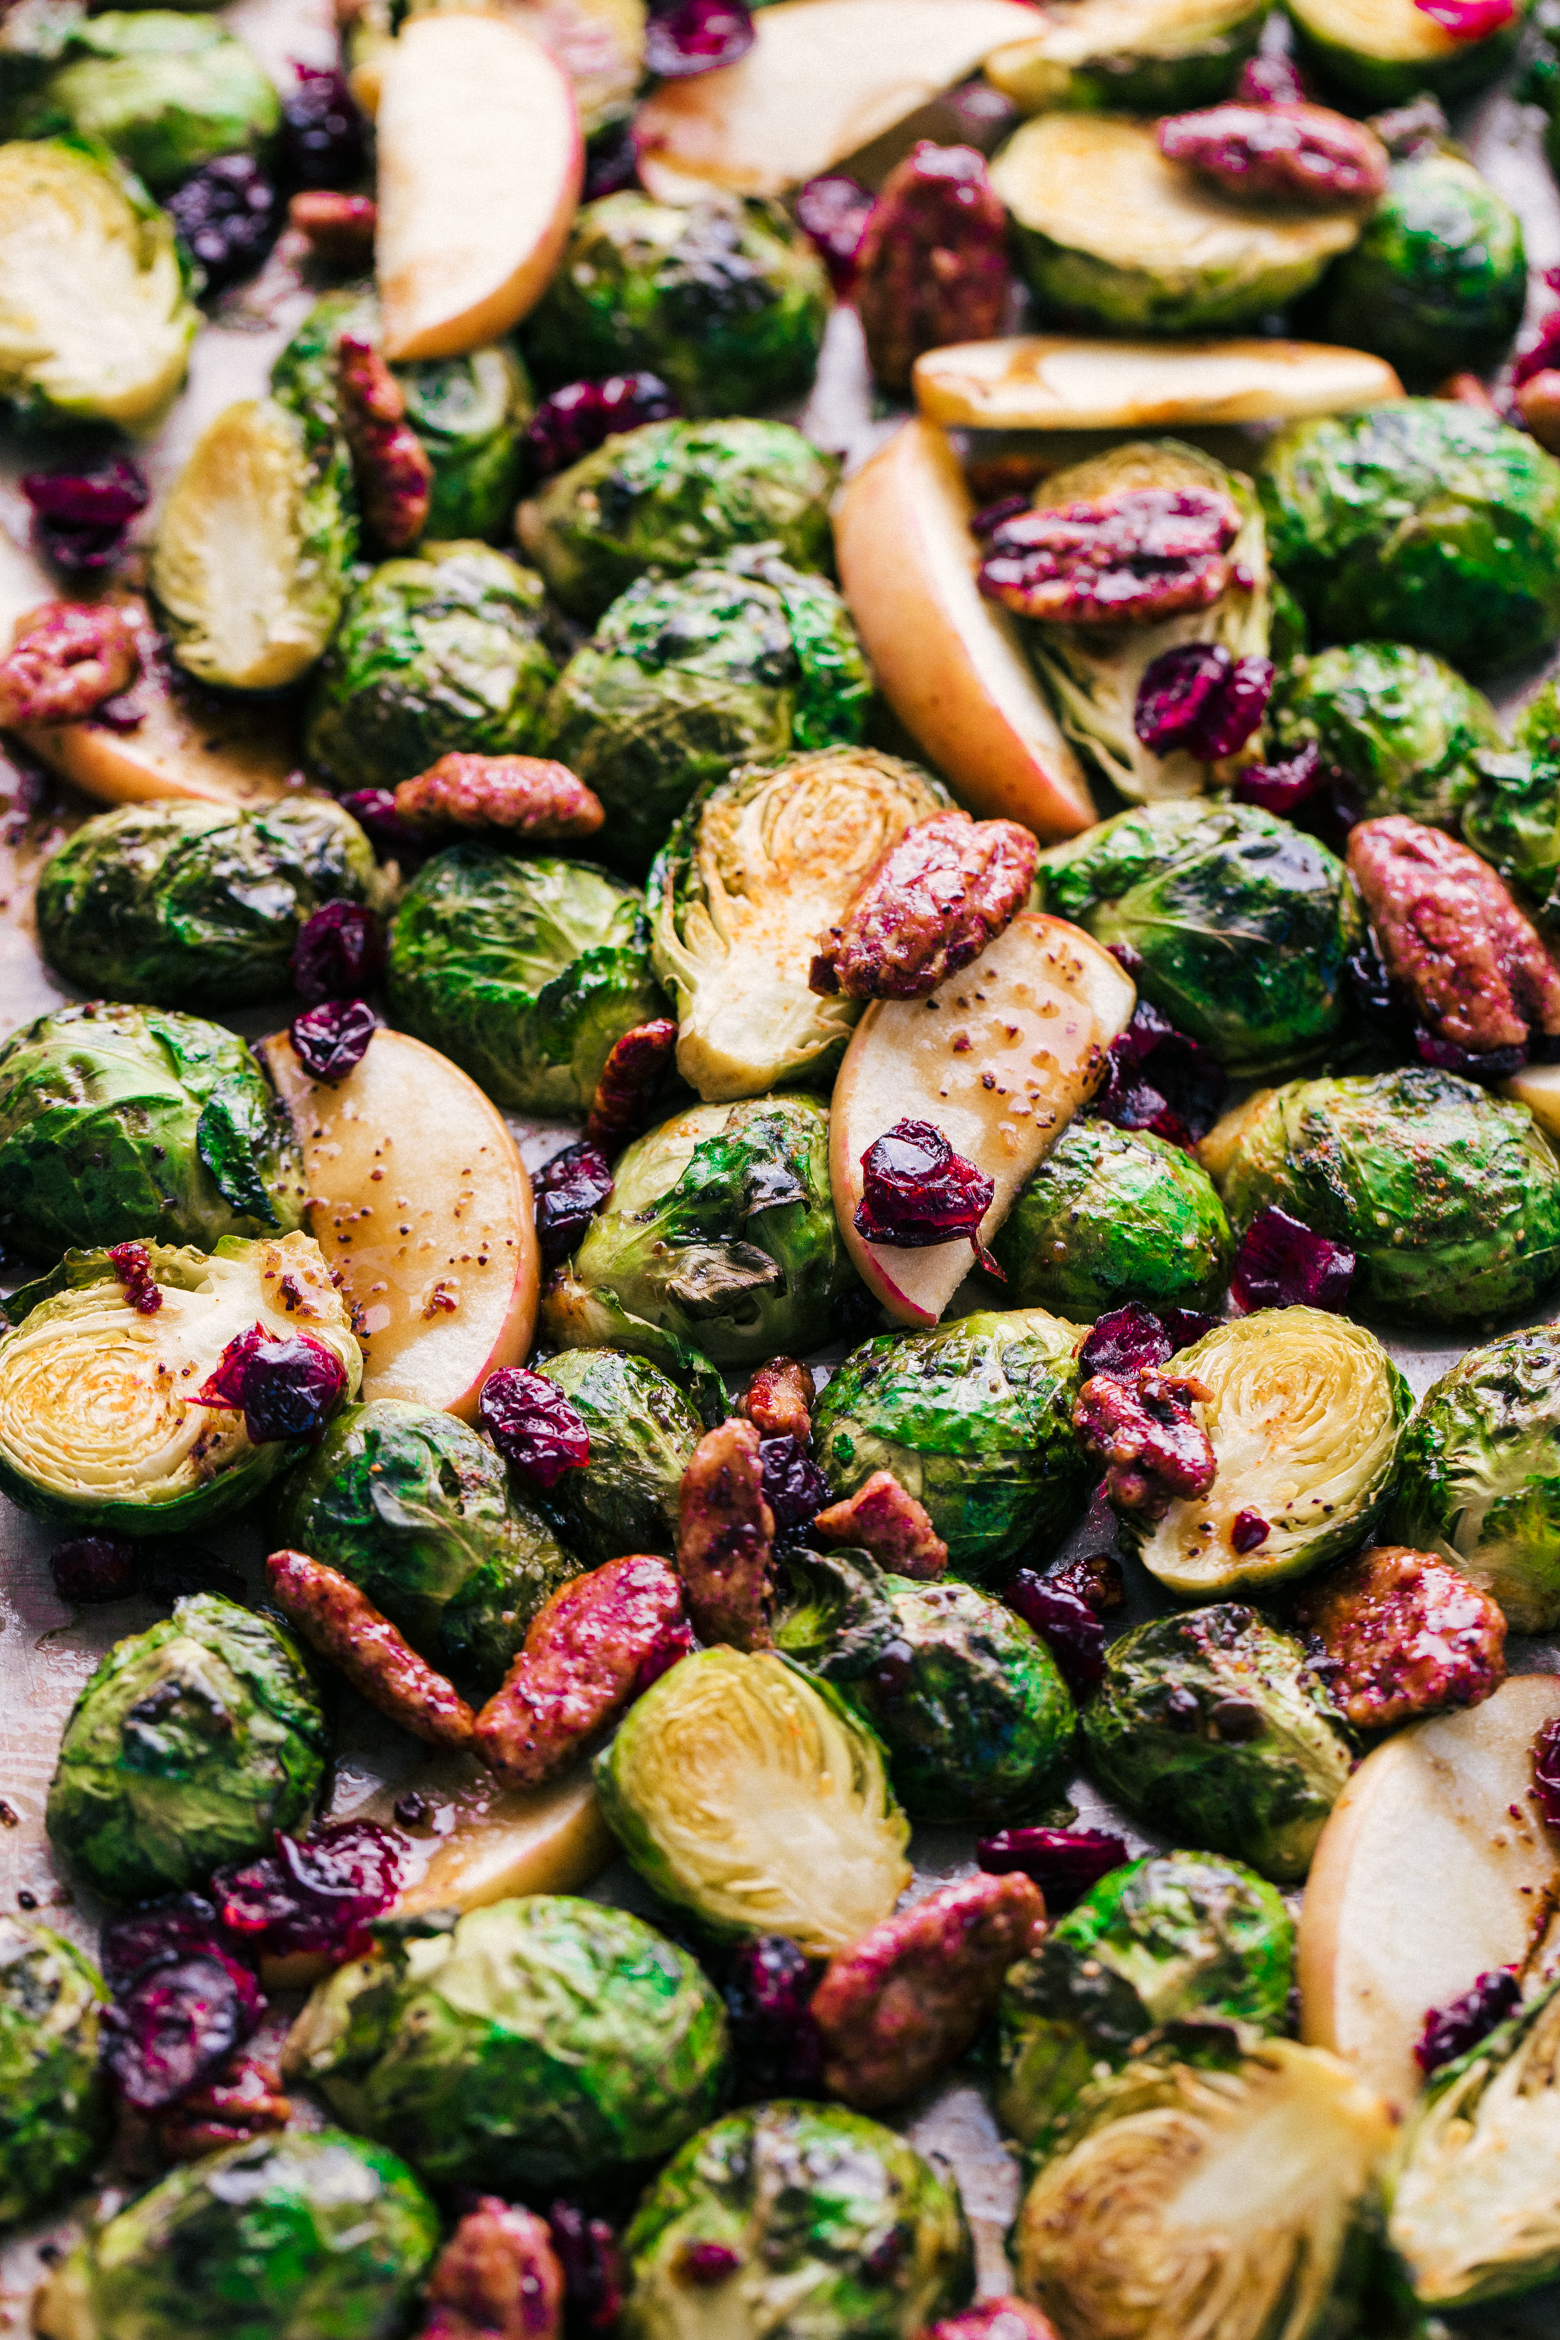 roasted brussels sprouts on a sheet pan with glazed pecans and crasins by The Food Cafe